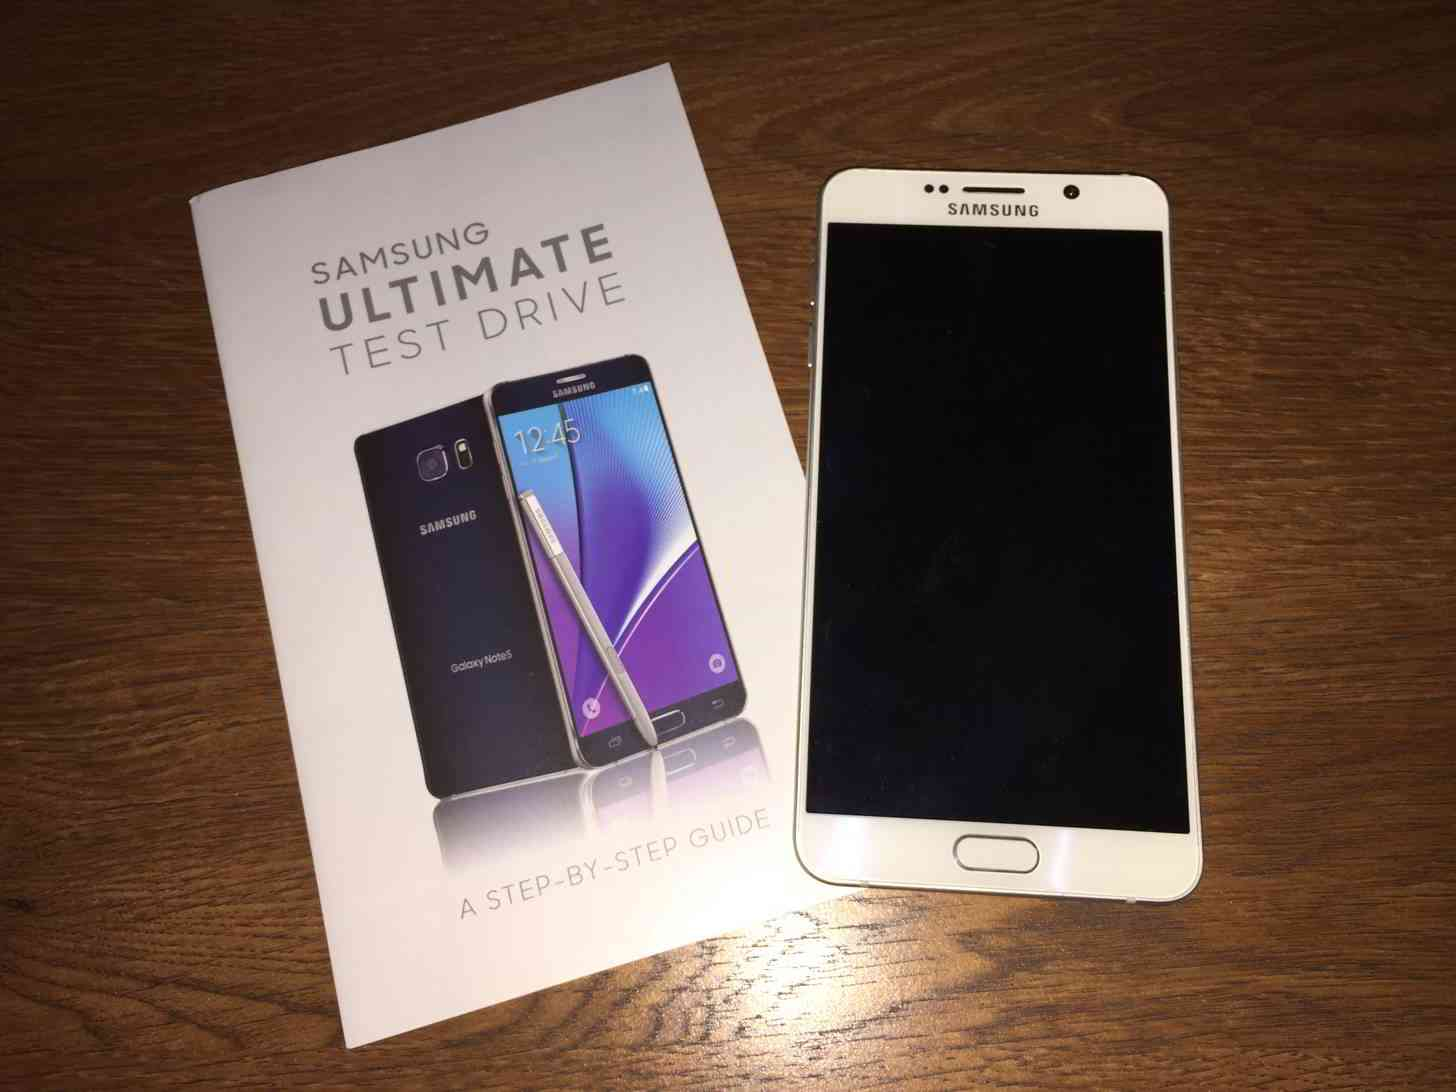 Samsung Ultimate Test Drive Note 5